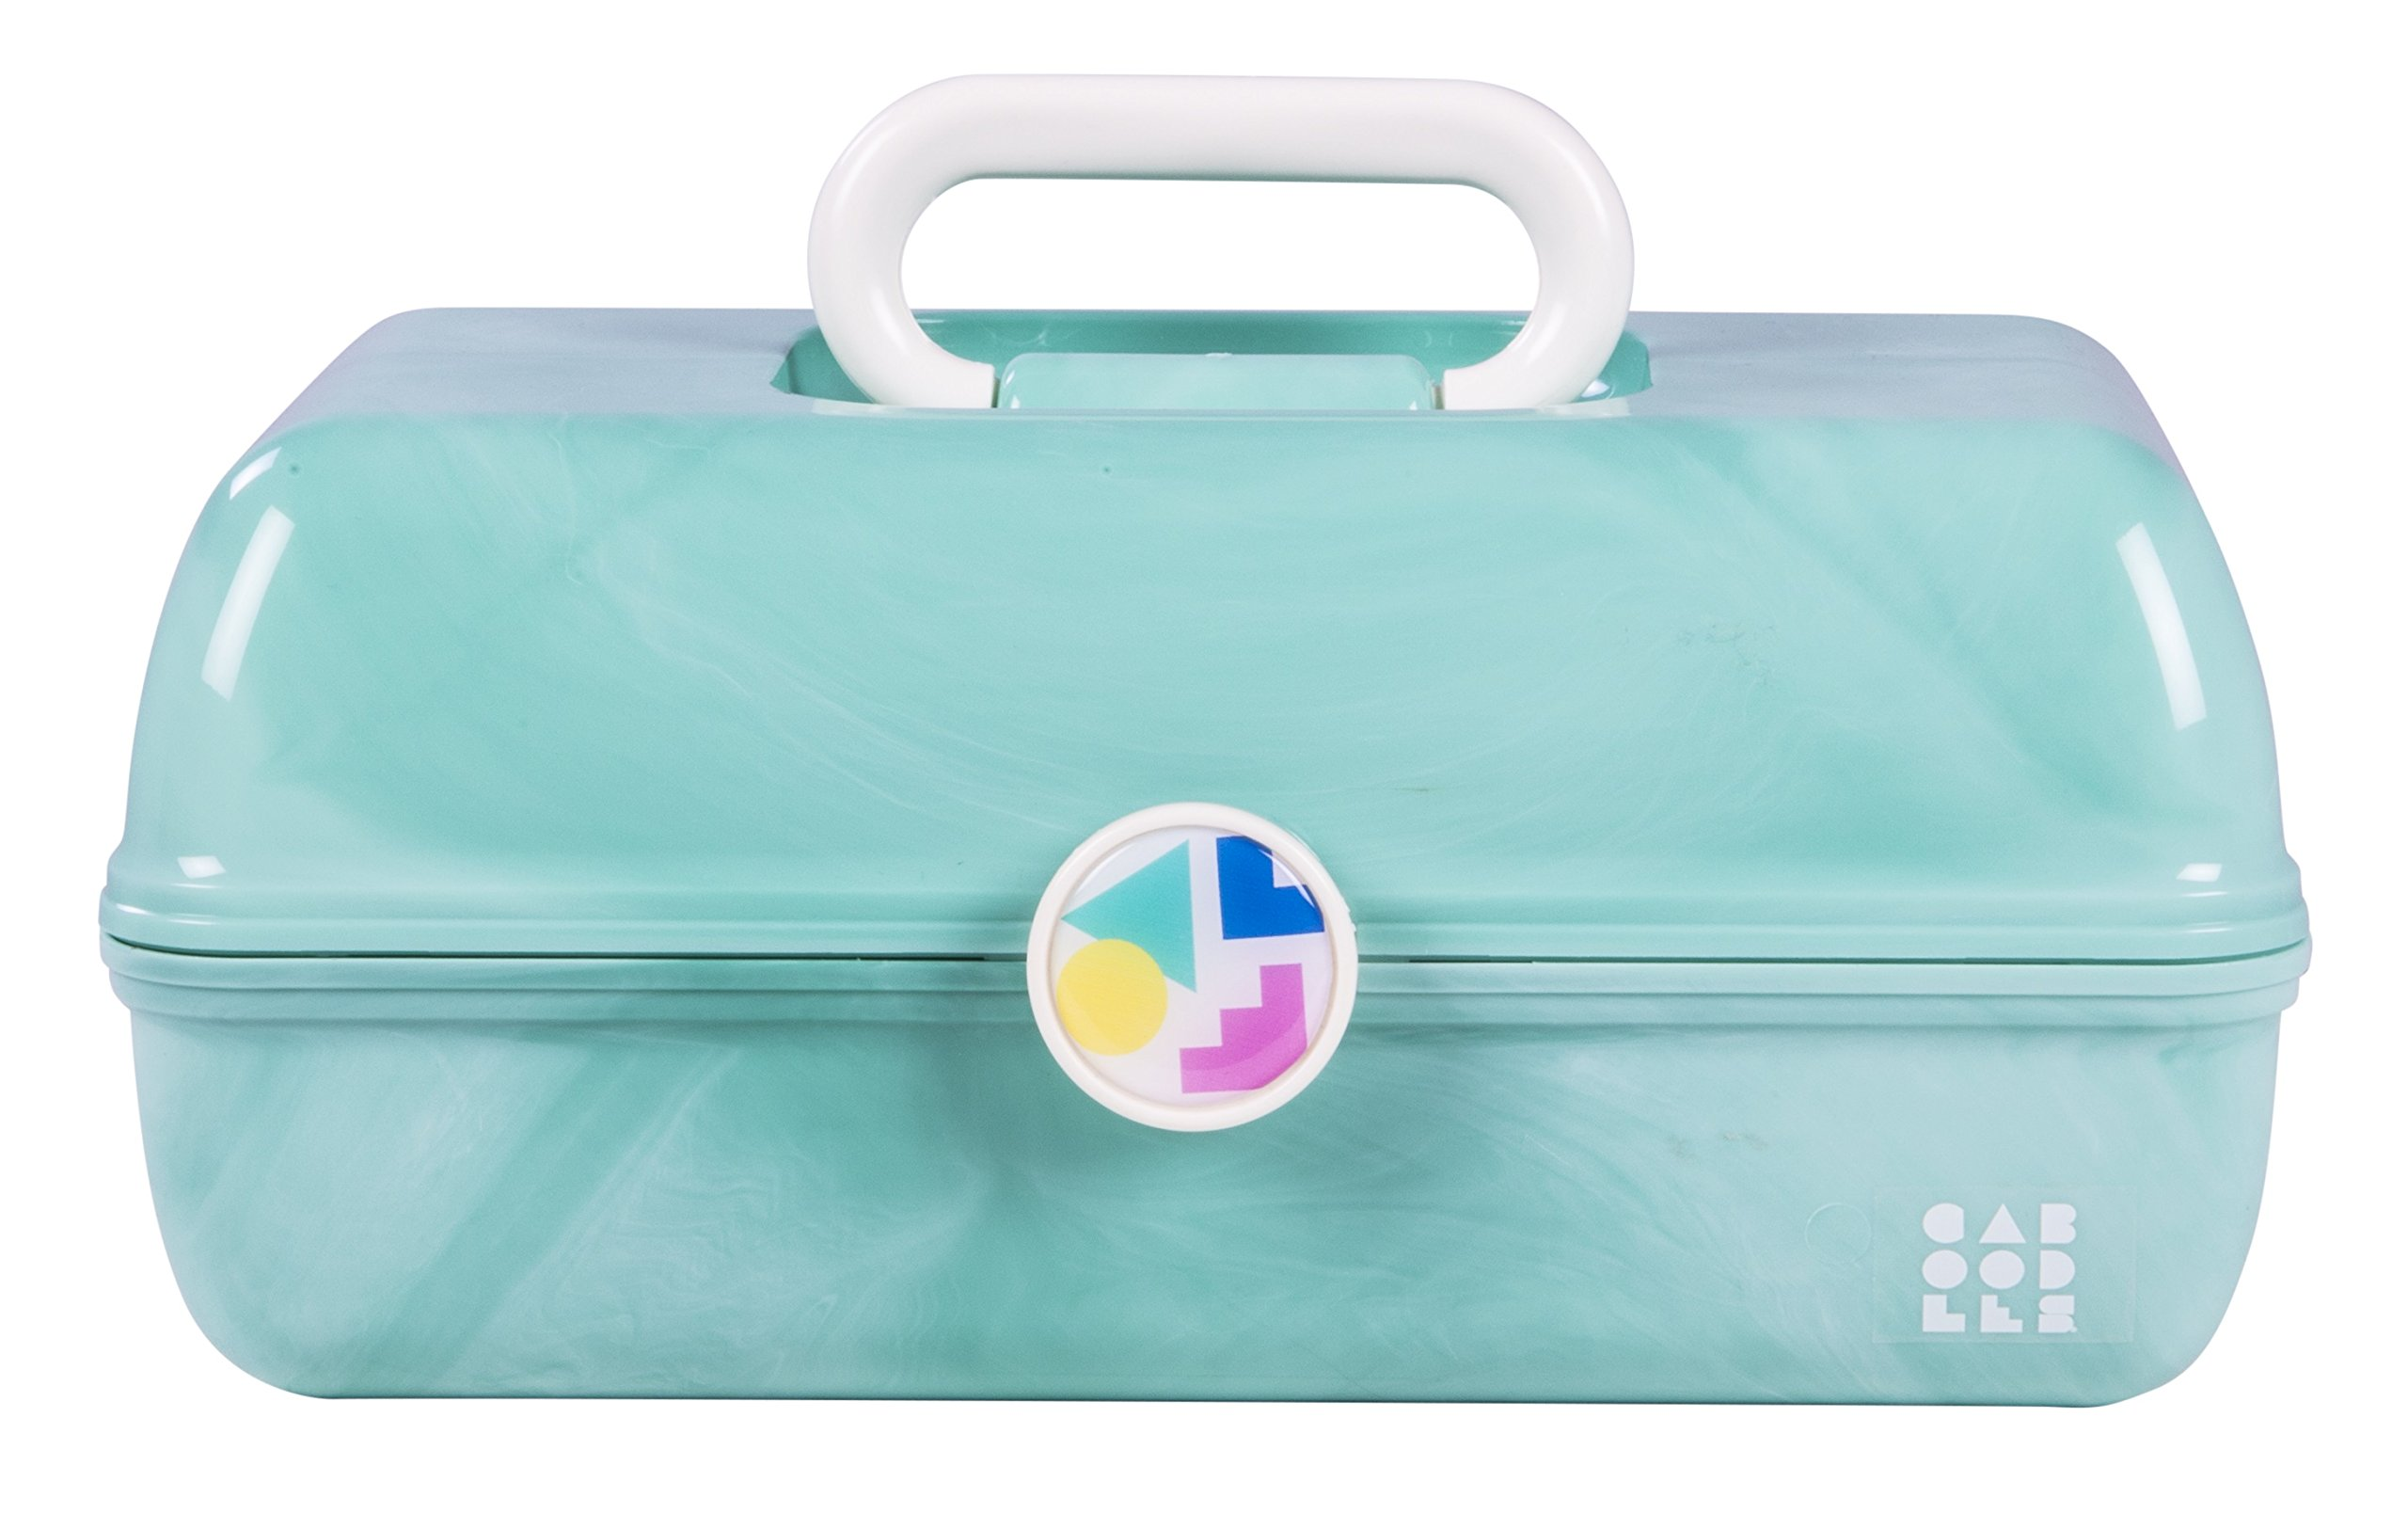 Caboodles On The Go Girl Sea Foam Marble Vintage Case, 1 Pound